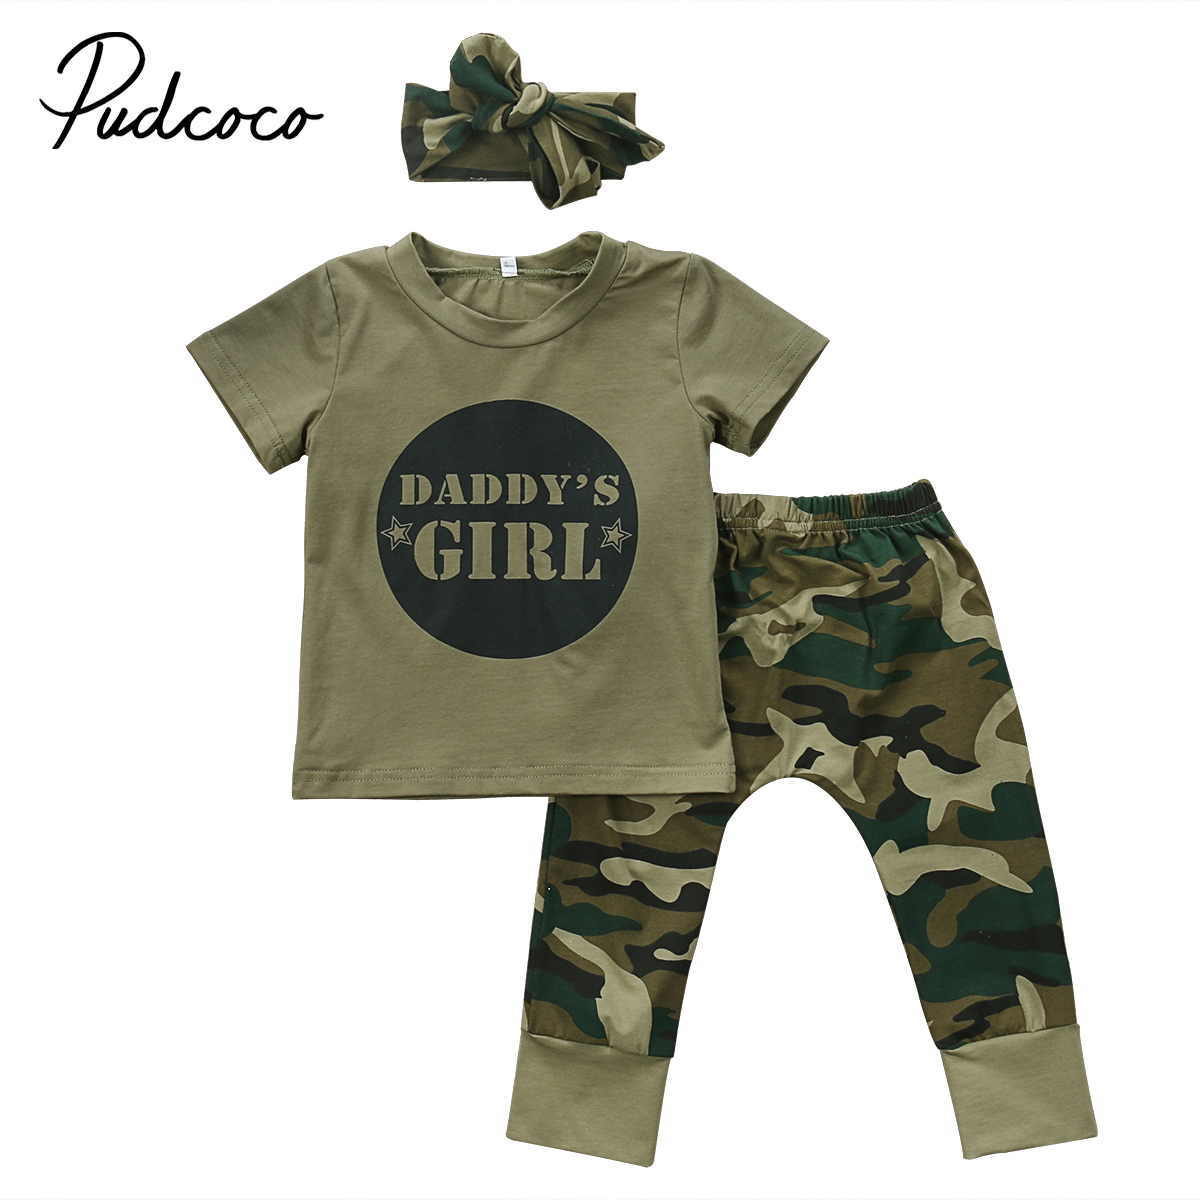 Summer Newborn Baby Boy Girls Camouflage T-shirt Tops+Pants Outfits Set Clothes Army Green Children Letters Print Clothing 0-24M type 55tyb recorder calorimeter motor 375 motor turn